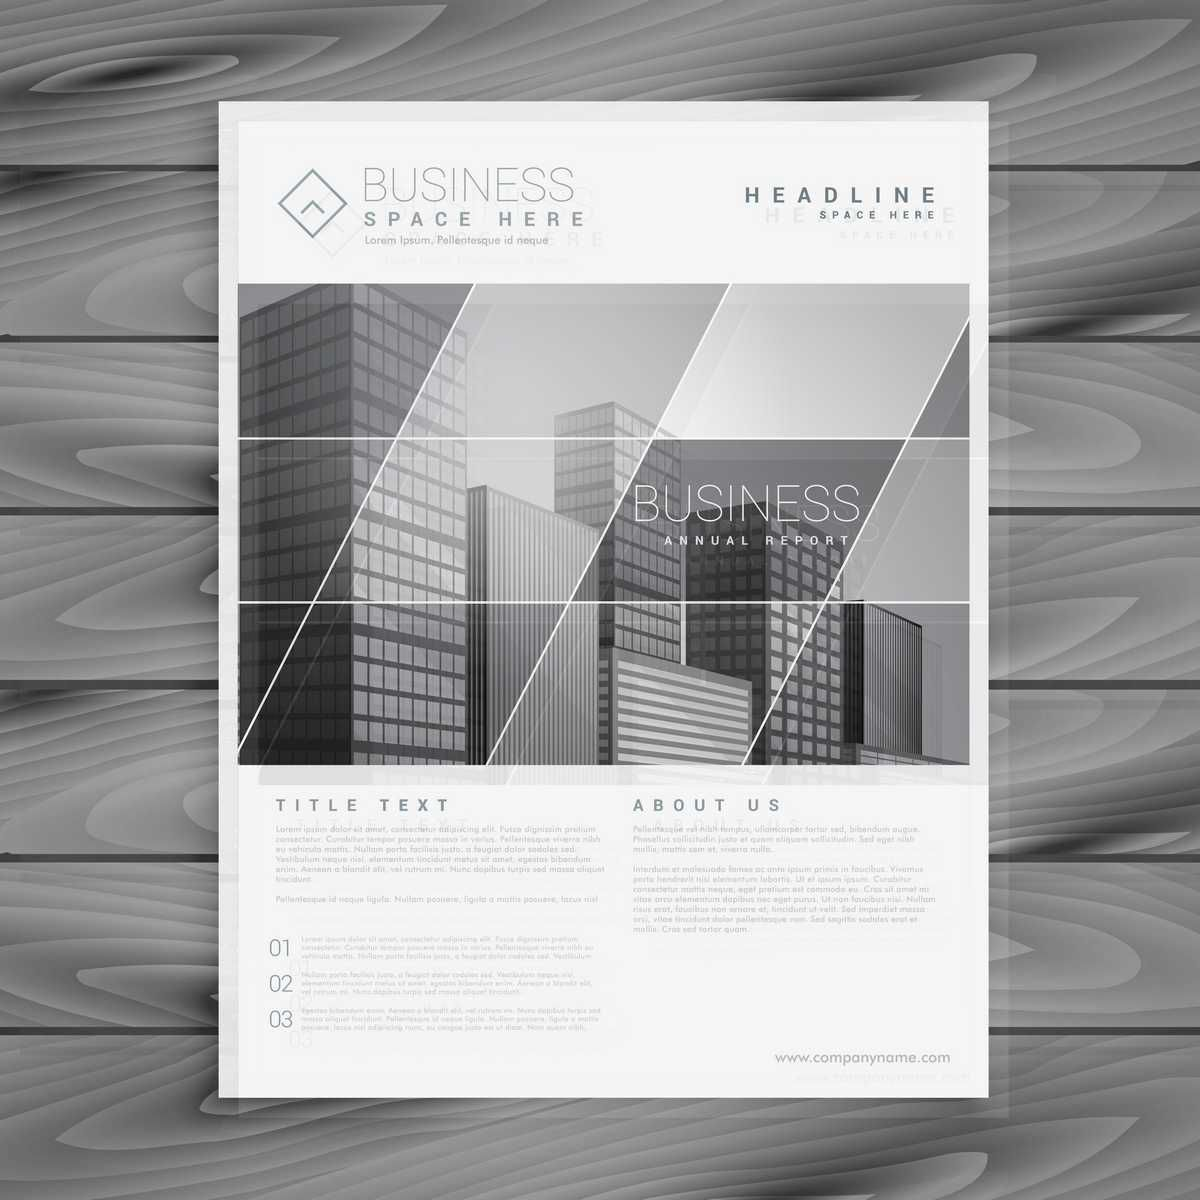 Company Brochure In A Stylish Design - FREE | Brochures | Pinterest ...